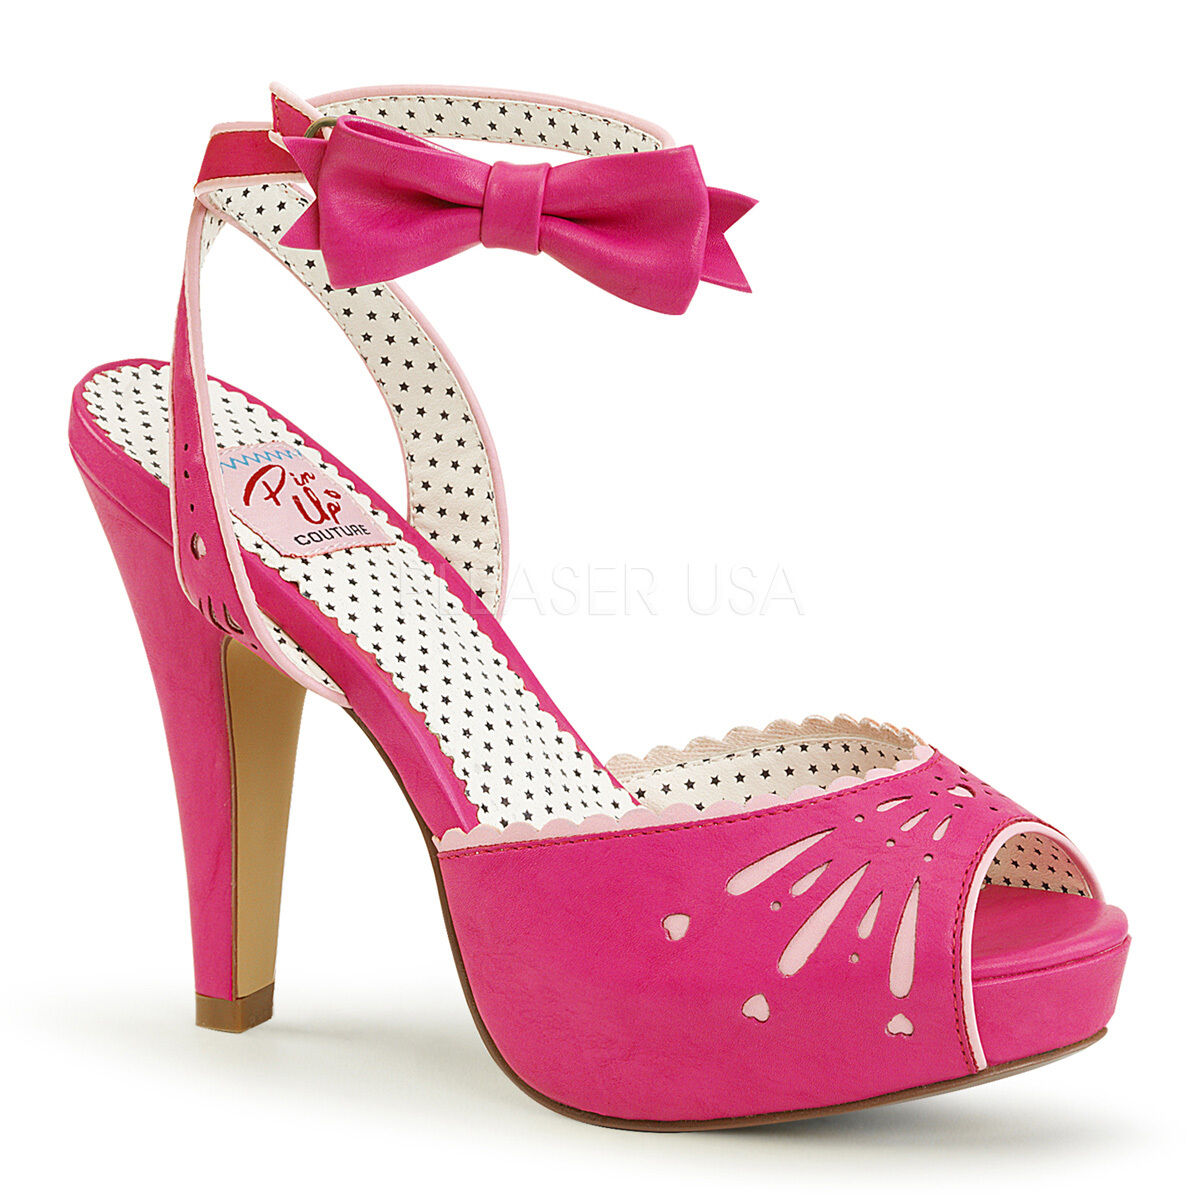 SALE PINUP Sexy Retro Platform 4 1 2  Heel Peep Toe Sandal Hot Pink shoes 9